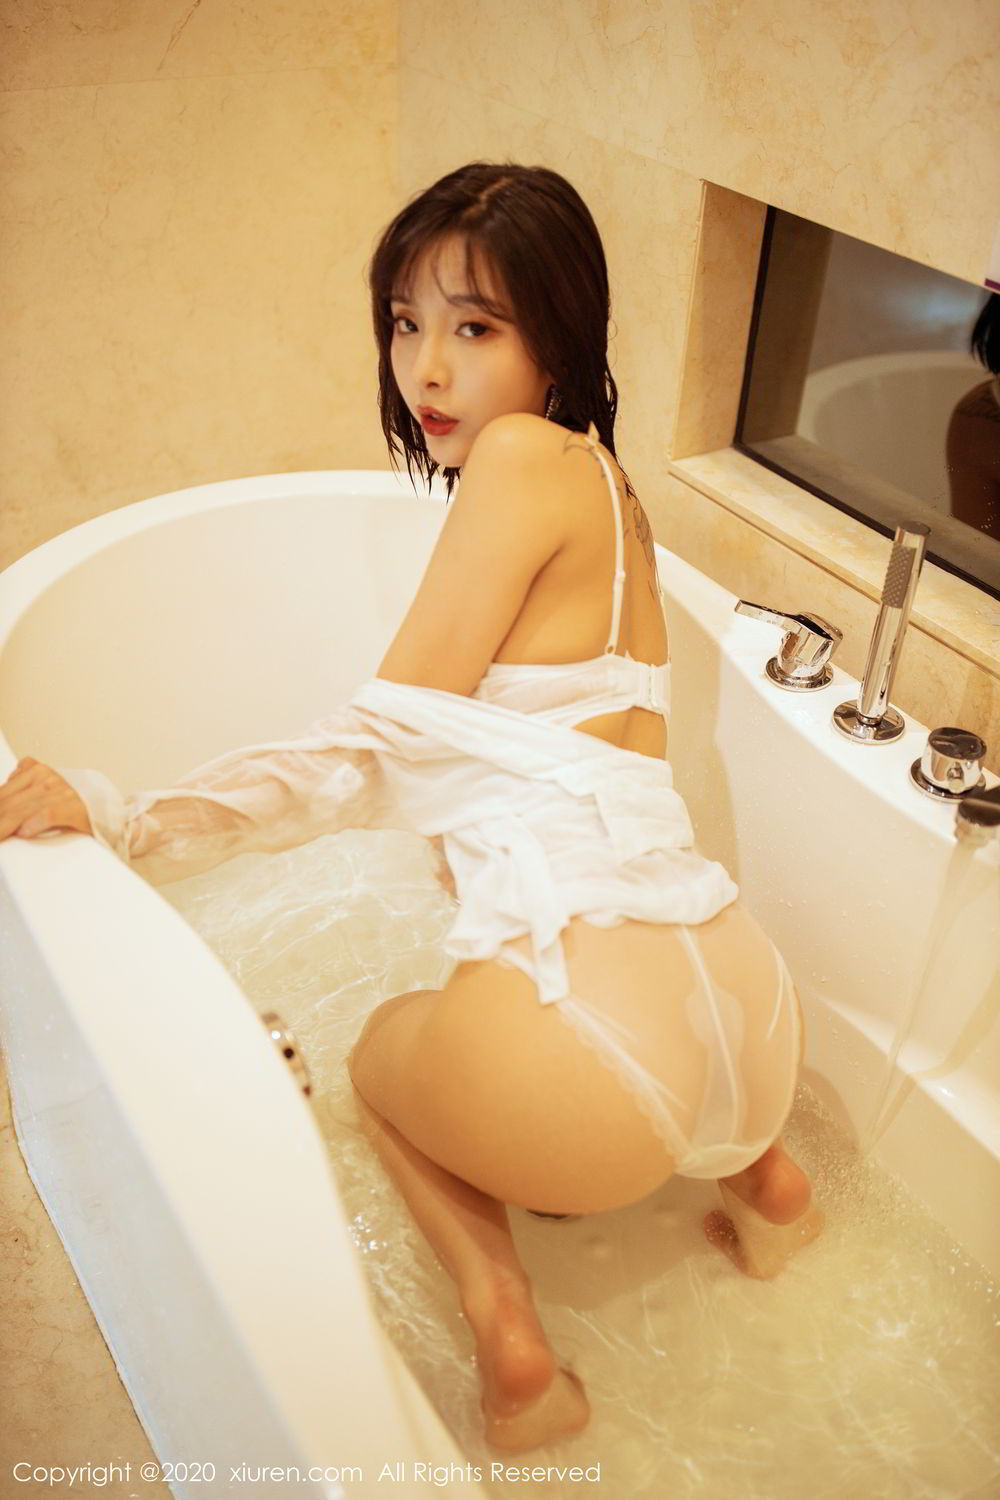 [XiuRen] Vol.2158 Chen Xiao Miao 24P, Bathroom, Chen Xiao Miao, Tall, Wet, Xiuren